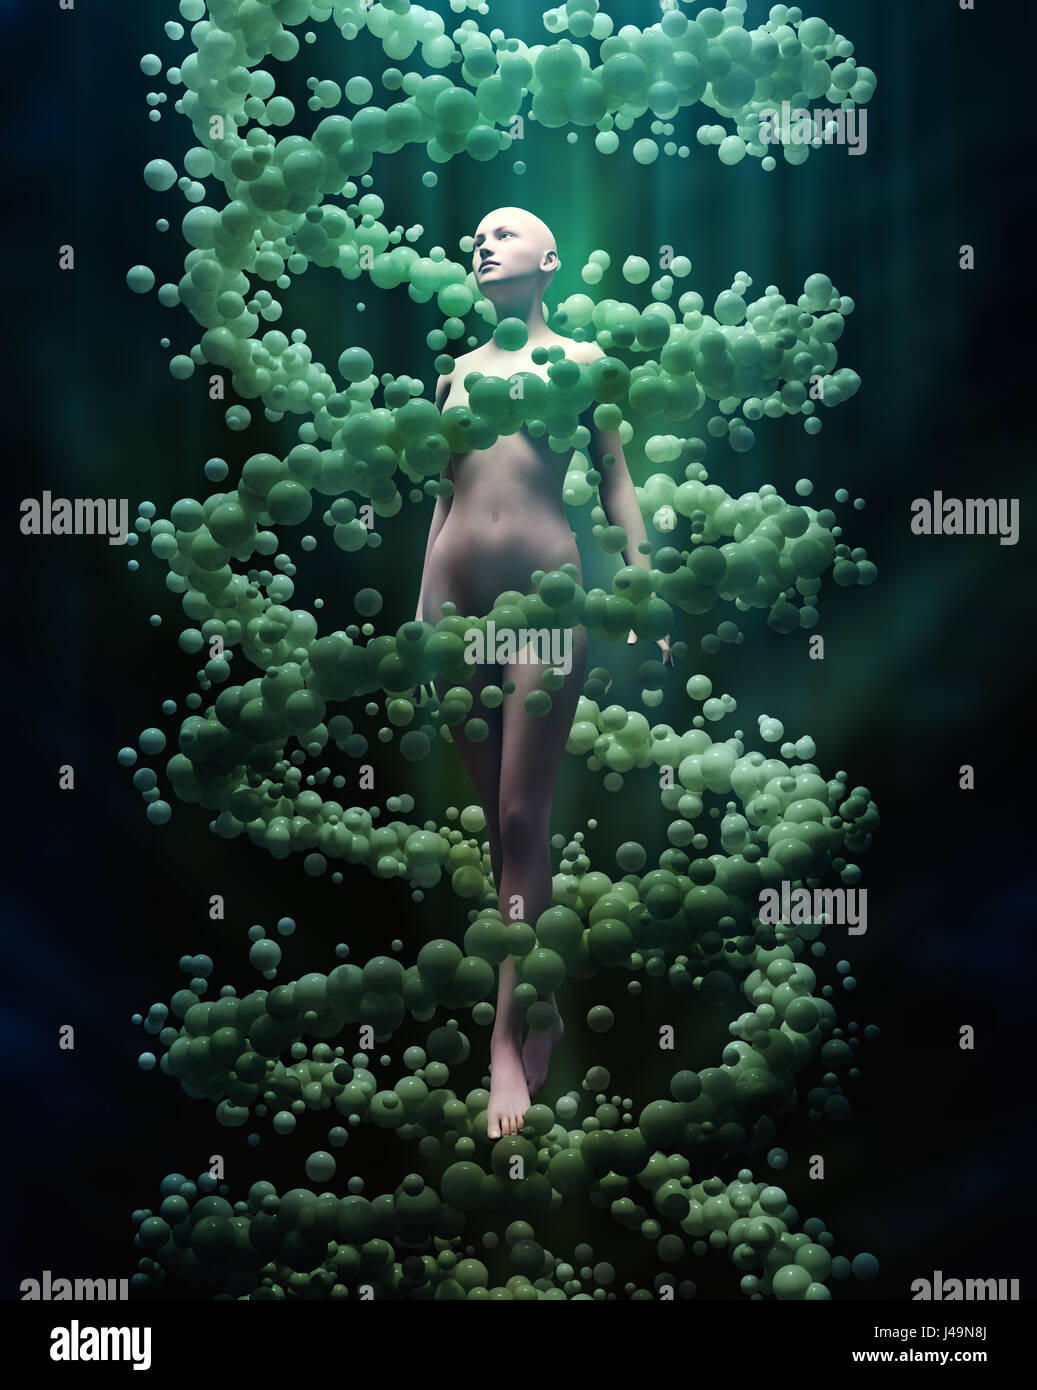 DNA and personal genetics concept 3D illustration - Stock Image